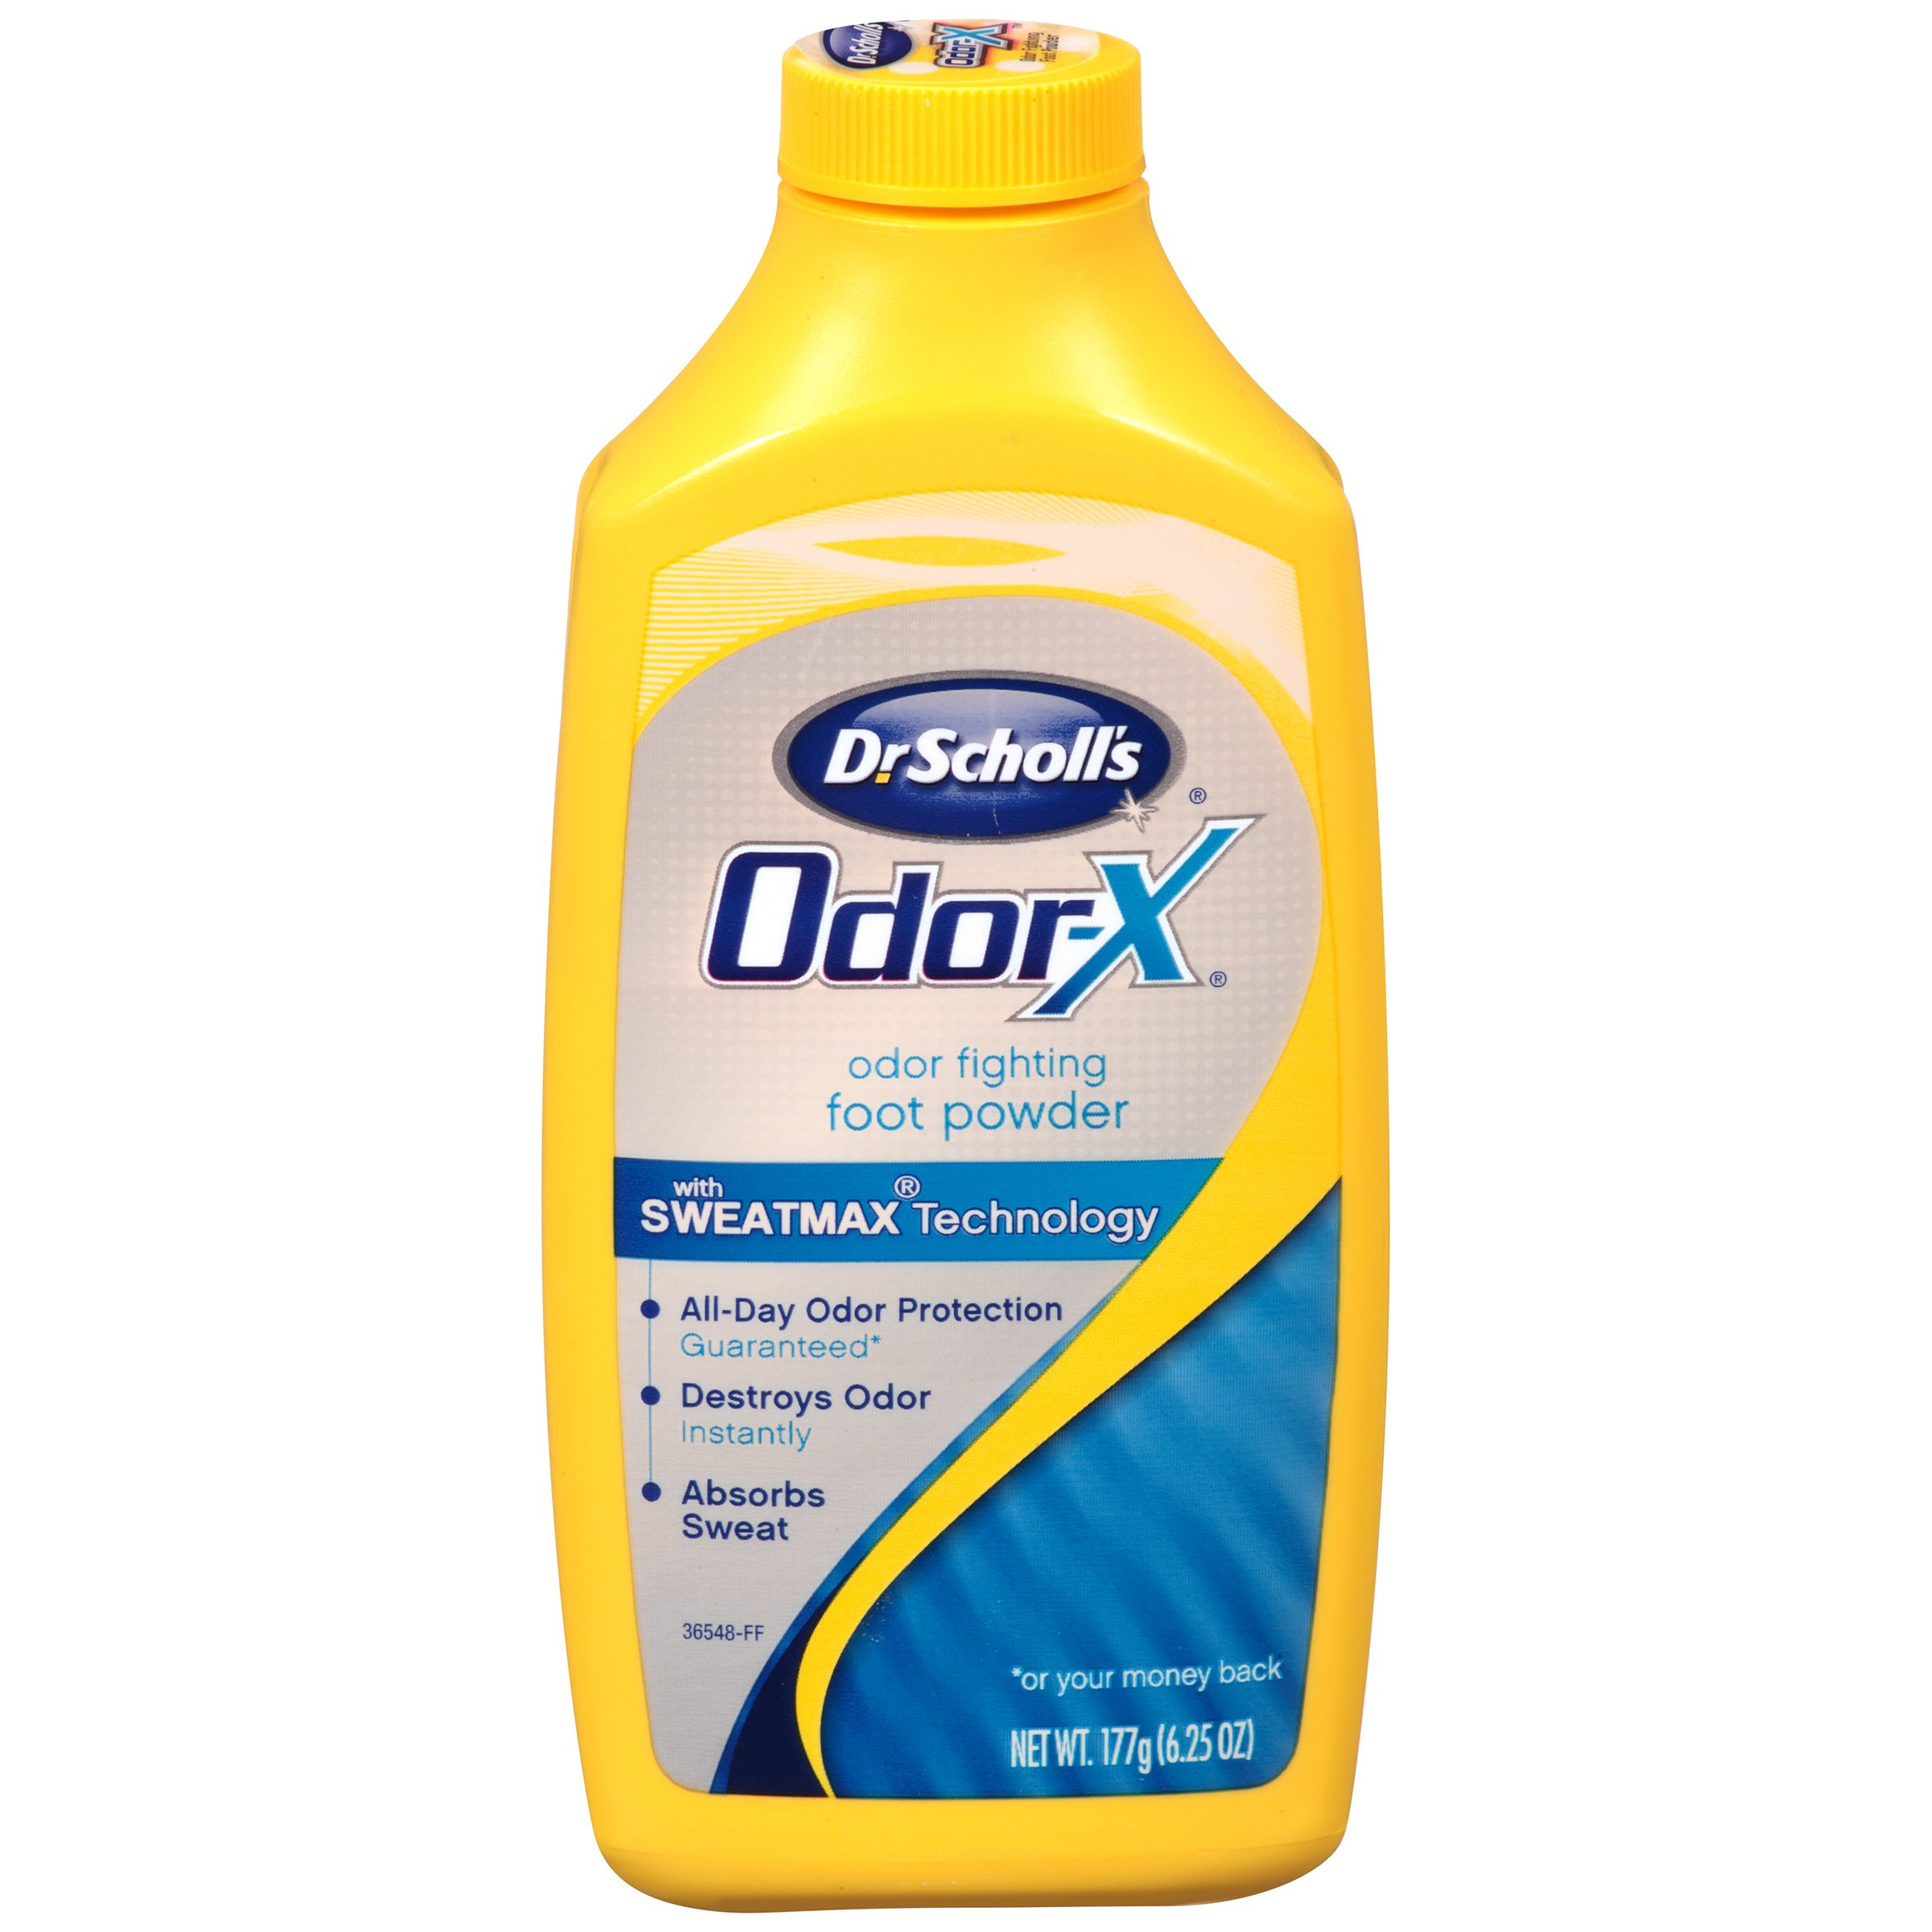 Dr. Scholl's OdorX All Day Deod Powder. 6.25 Ounces, (Pack of 3)